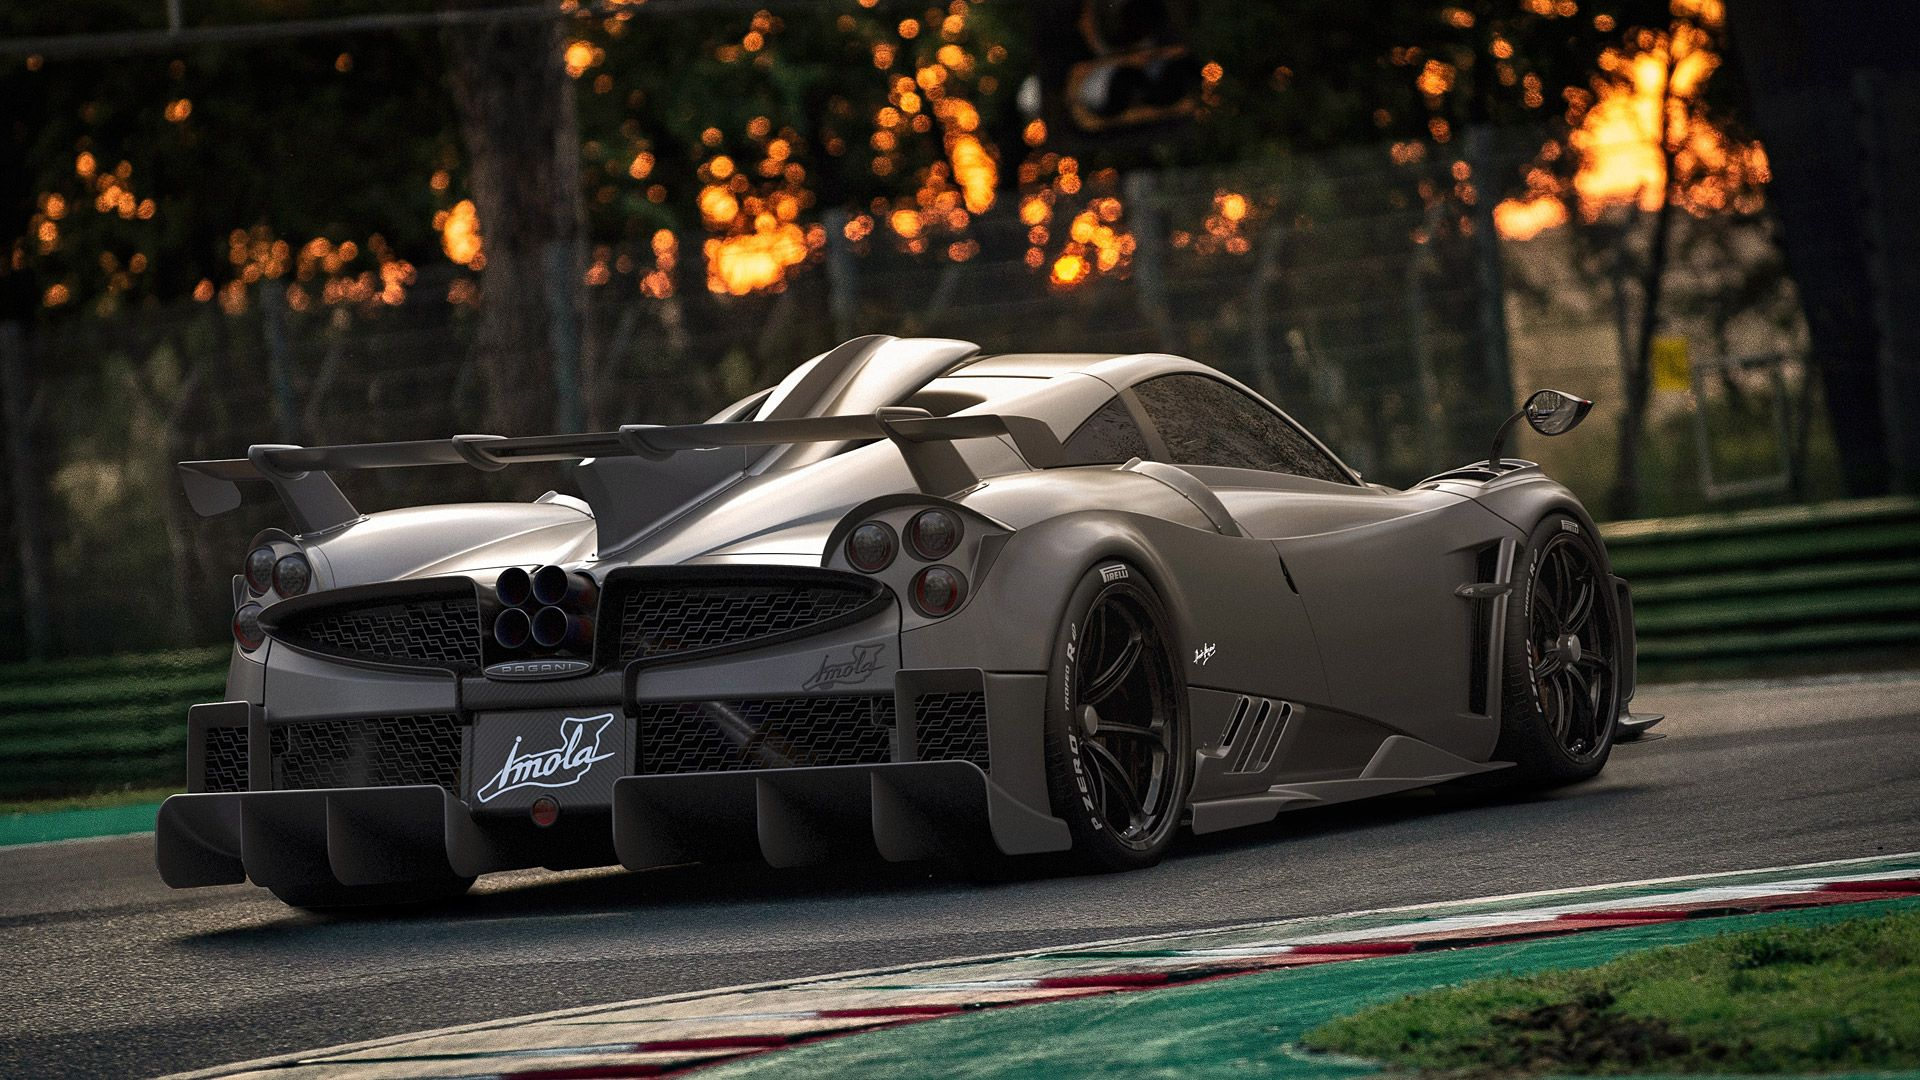 Pagani Imola Wallpapers Wallpaper Cave